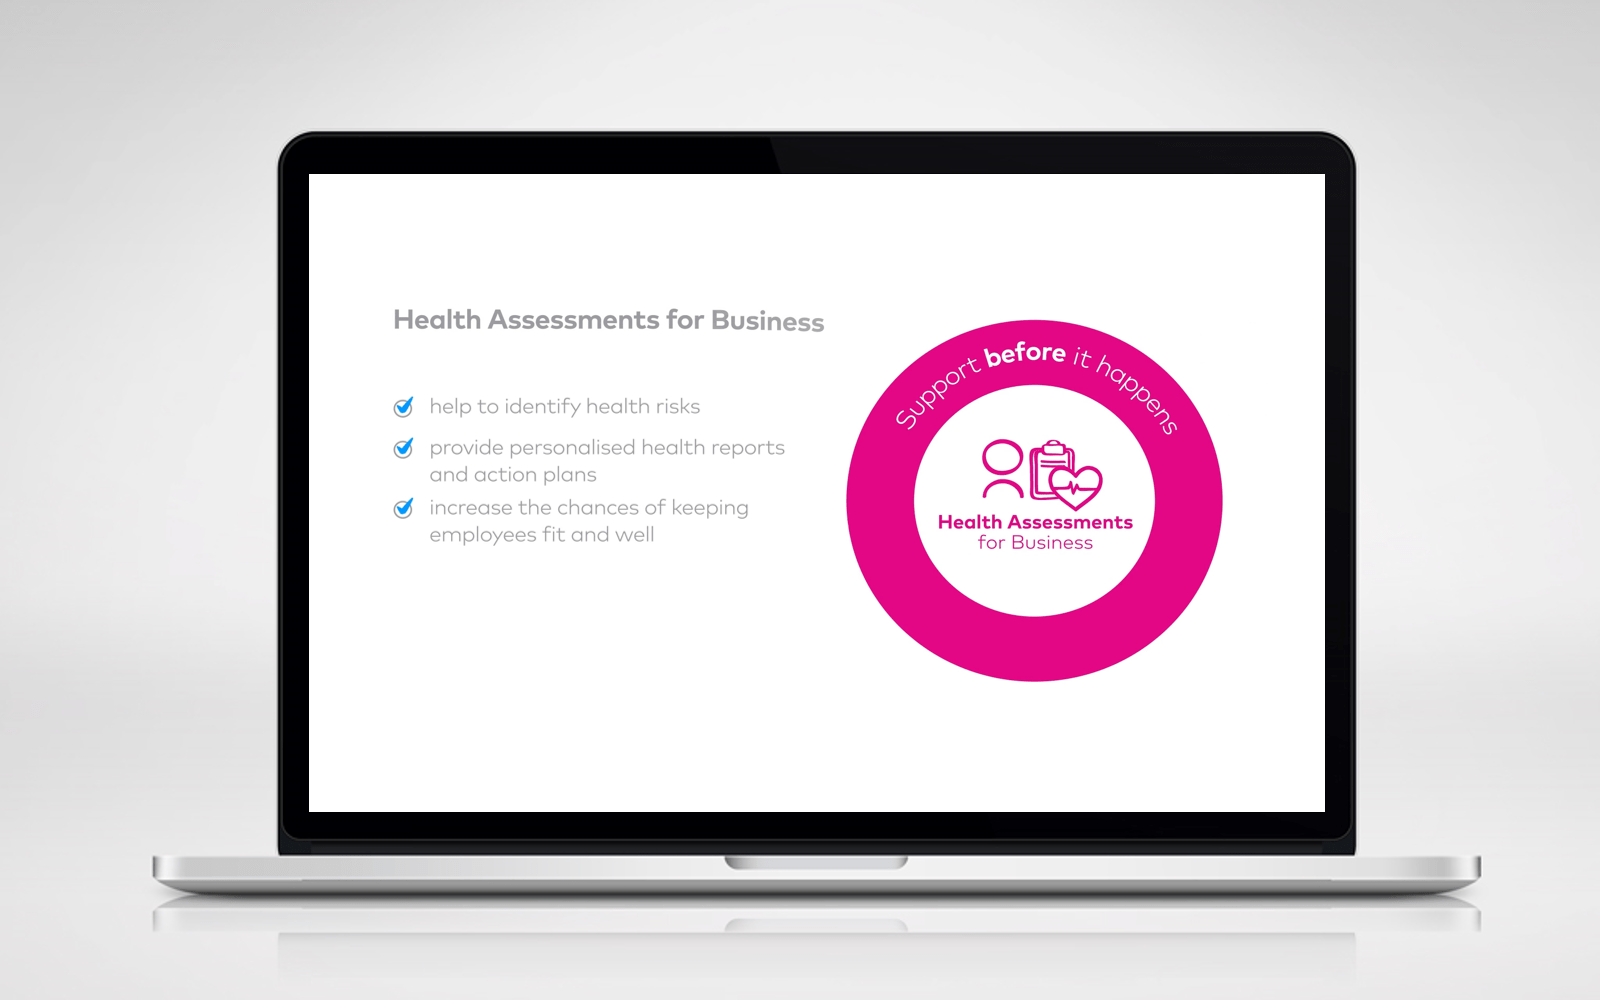 Health Assessments proposition animation